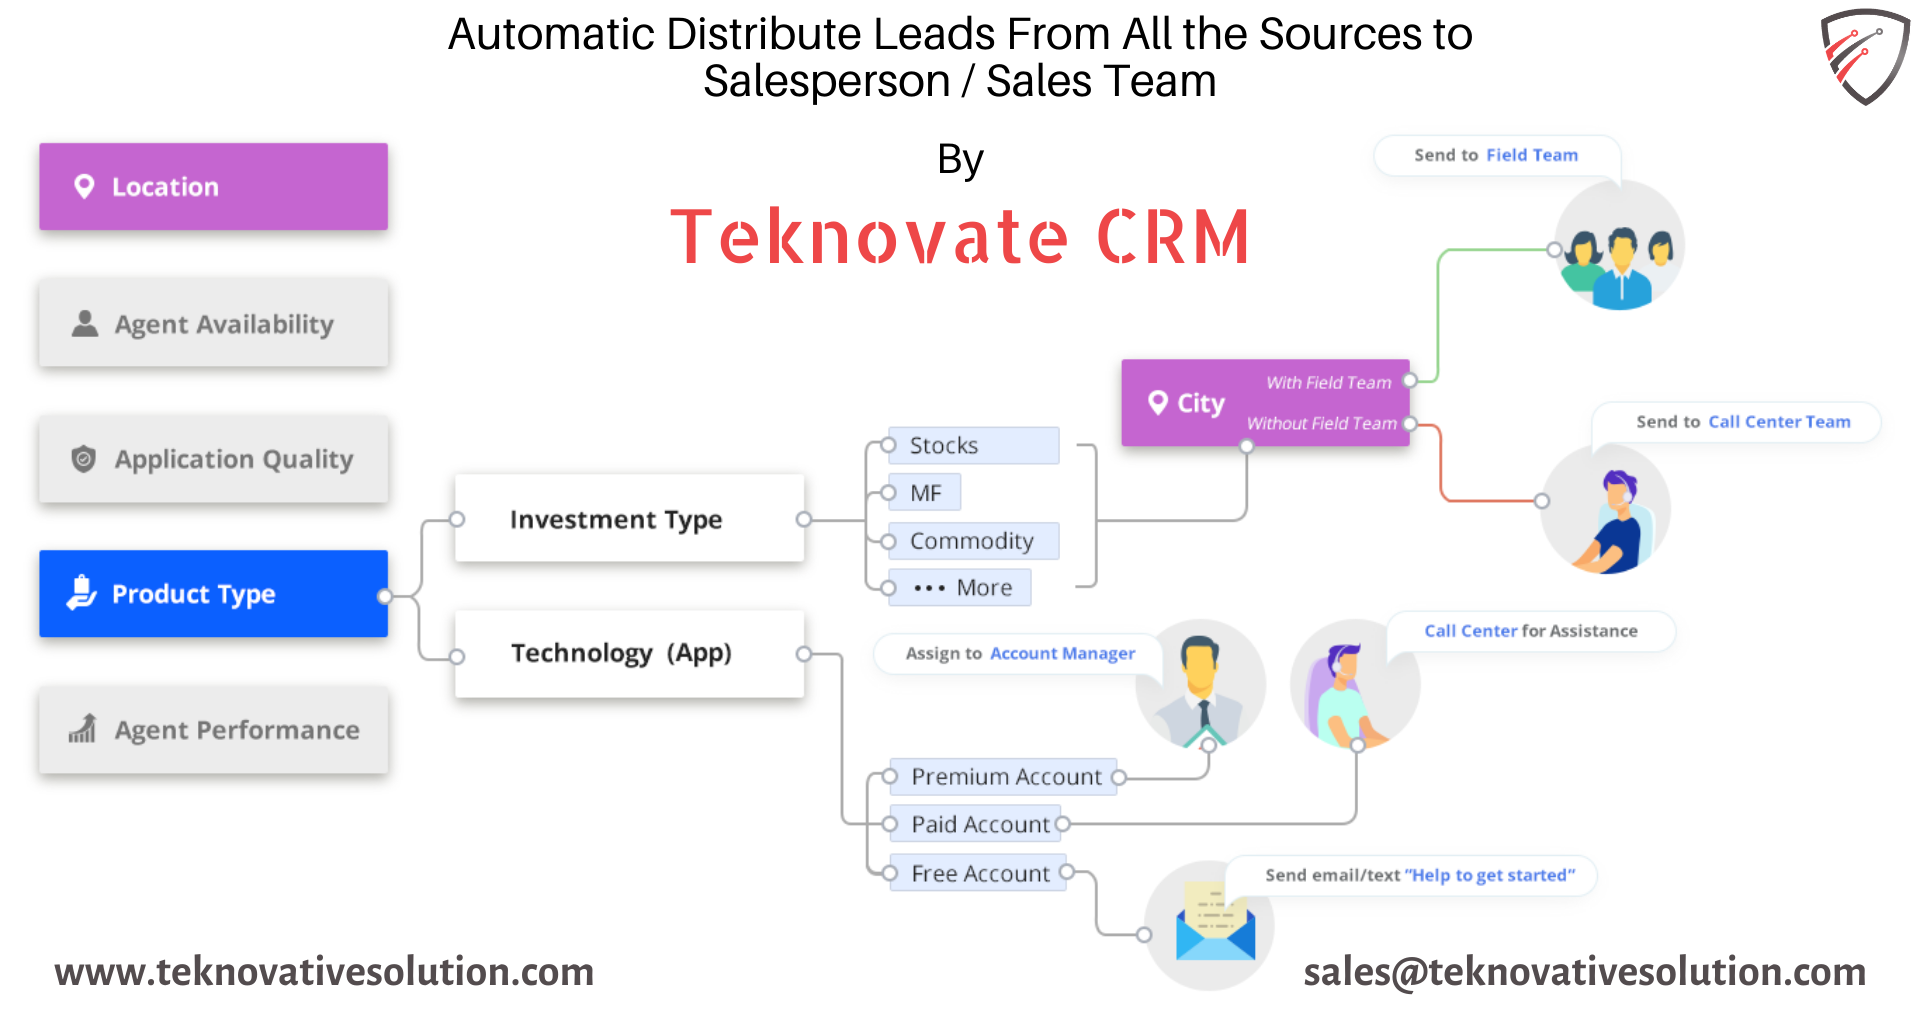 Automatic Lead Generation By Teknovative CRM Software